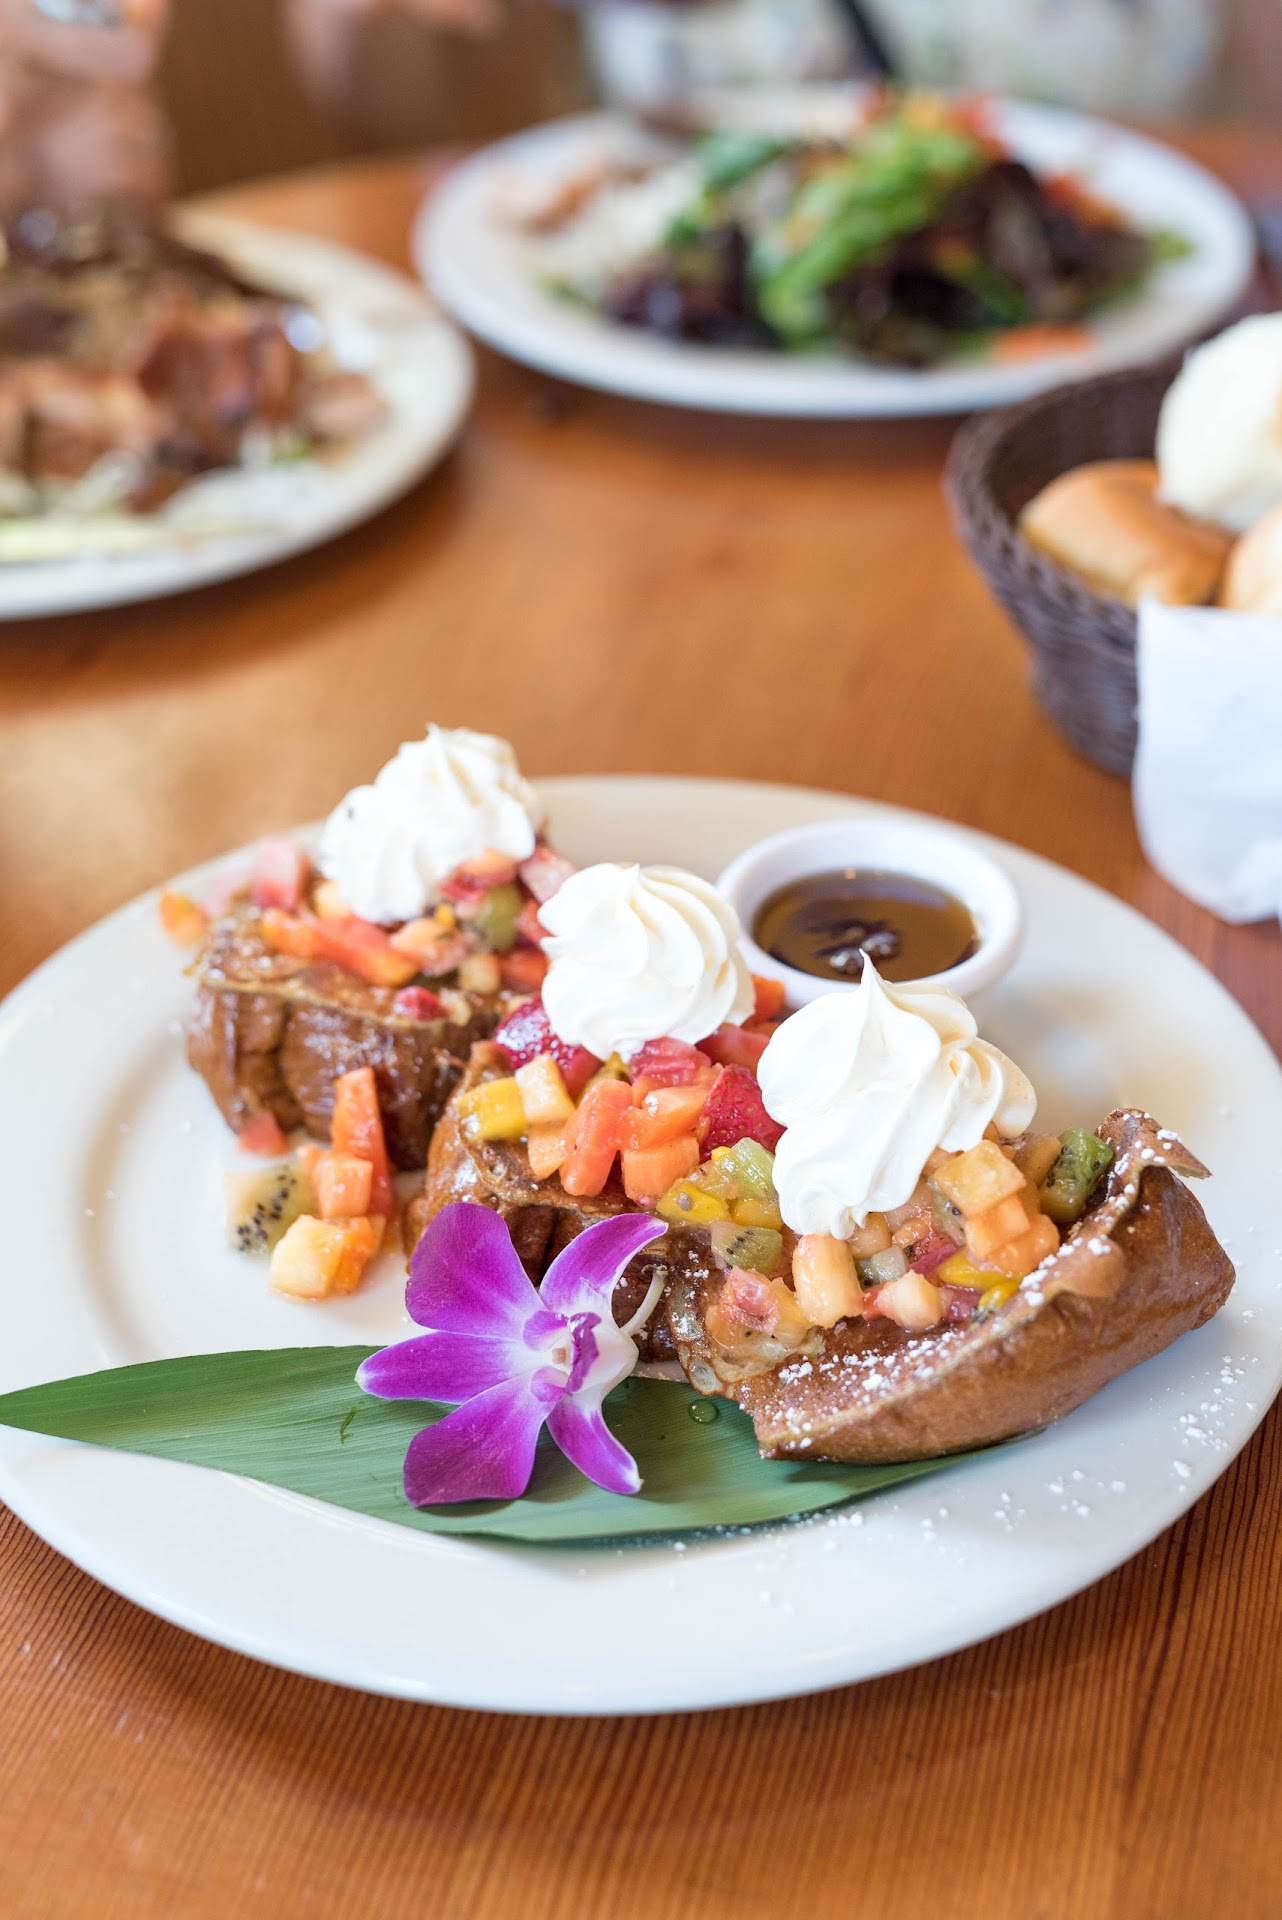 hawaiian french toast, sweet bread, tropical fruit, best food in southern california, torrance things to do, review, food blogger, utah travel blogger